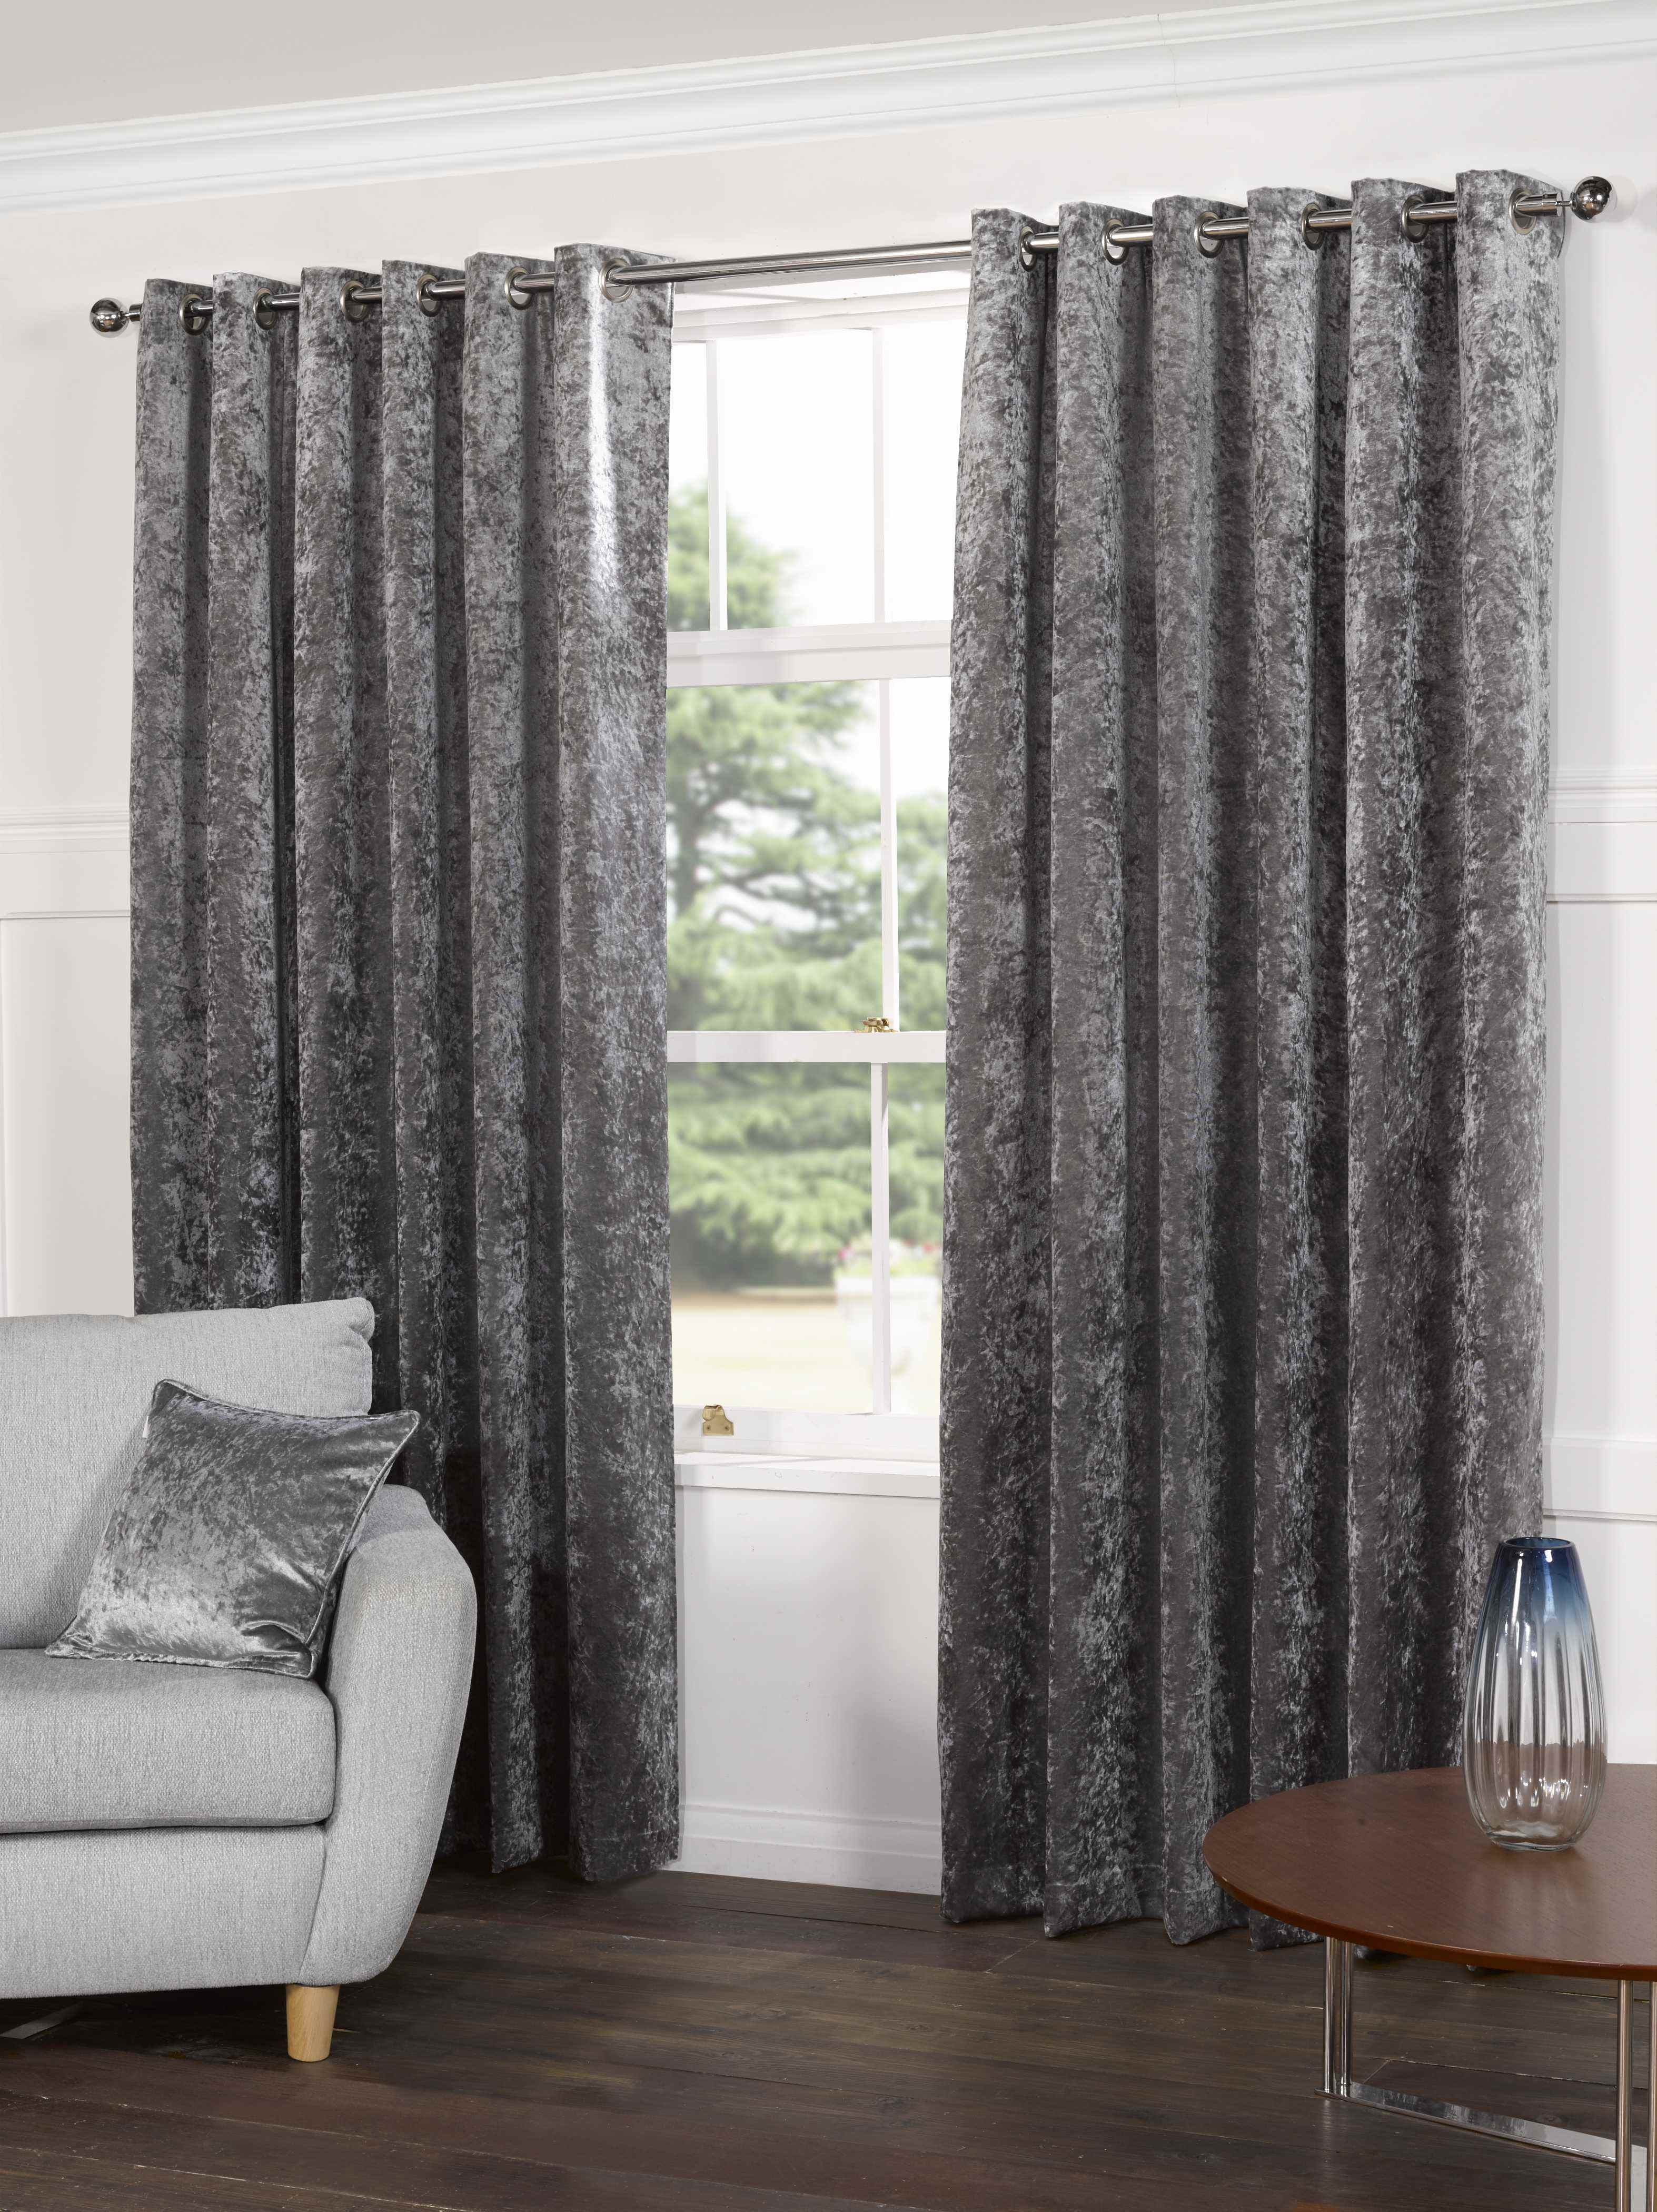 Plush Crushed Velvet Lined Ready Made Eyelet Ring Top Plain Intended For Velveteen Curtains (Image 10 of 15)